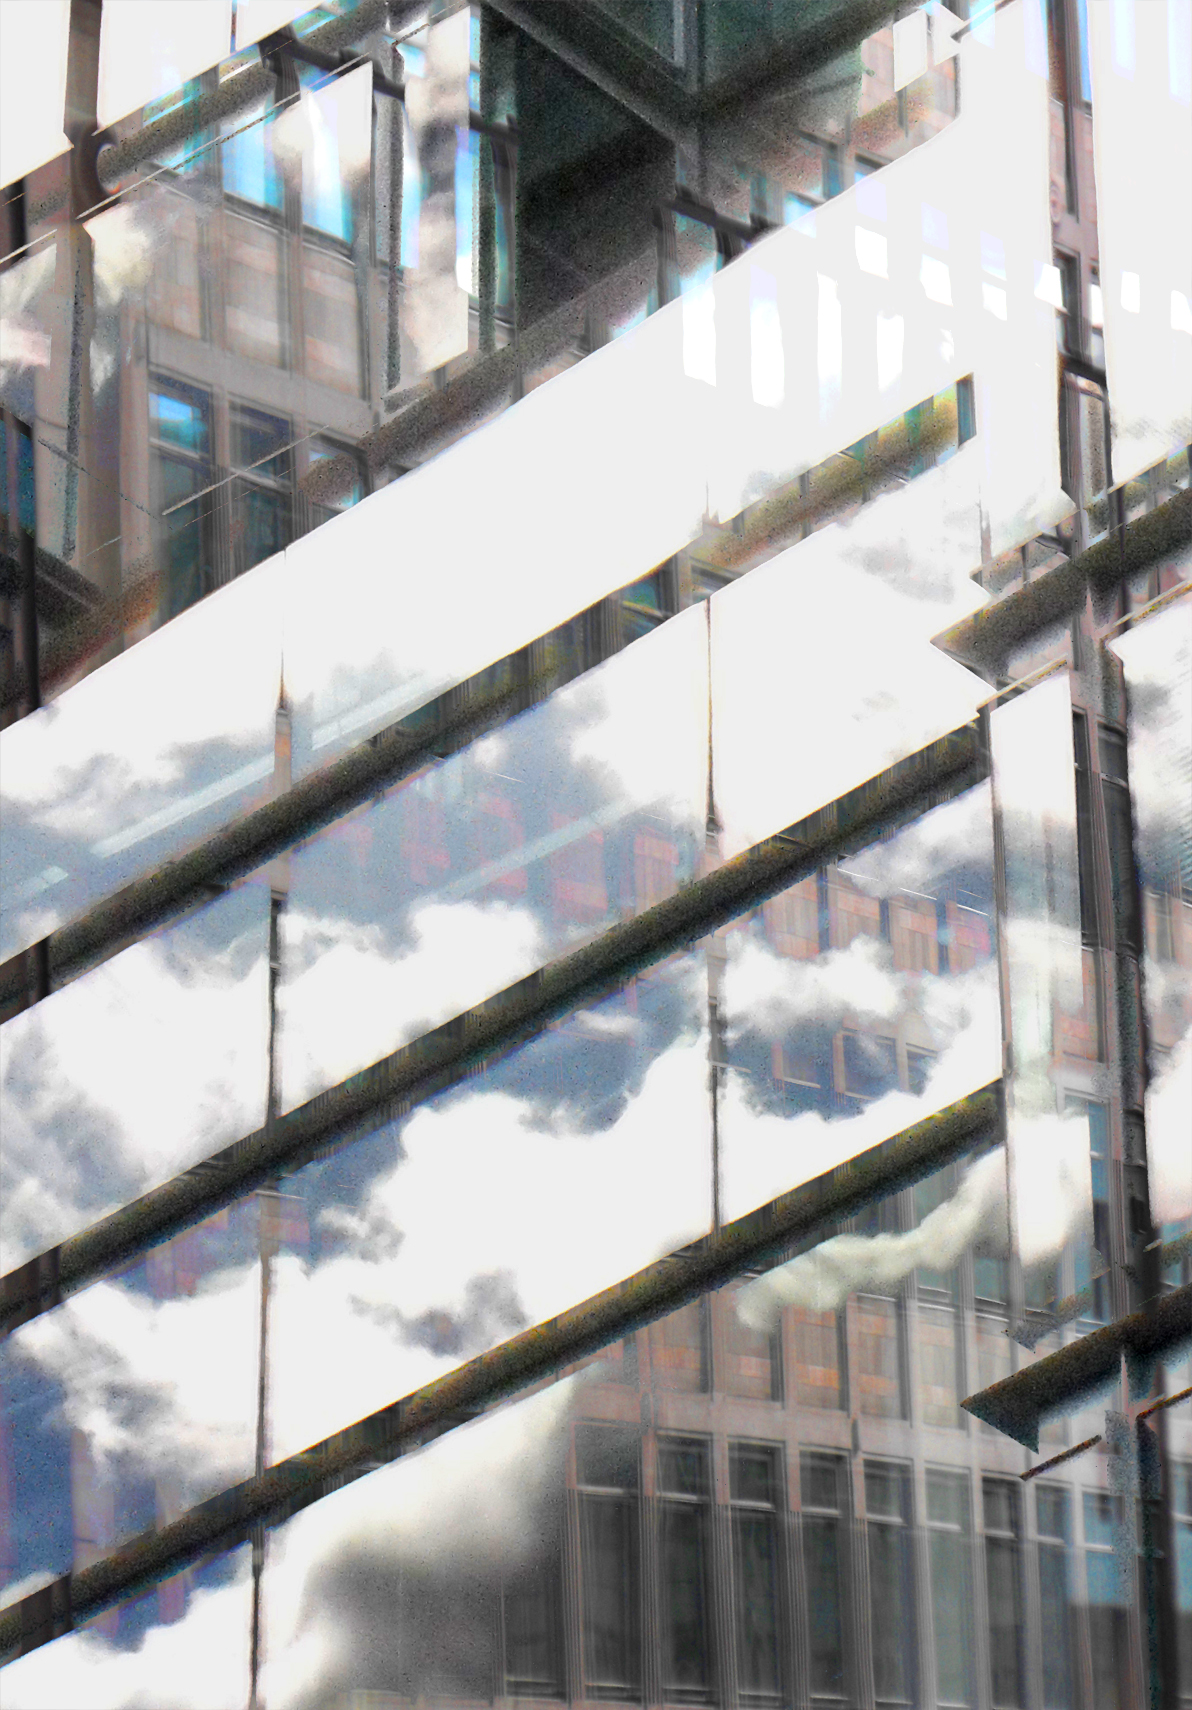 Abstract Reflection Photography Print 4